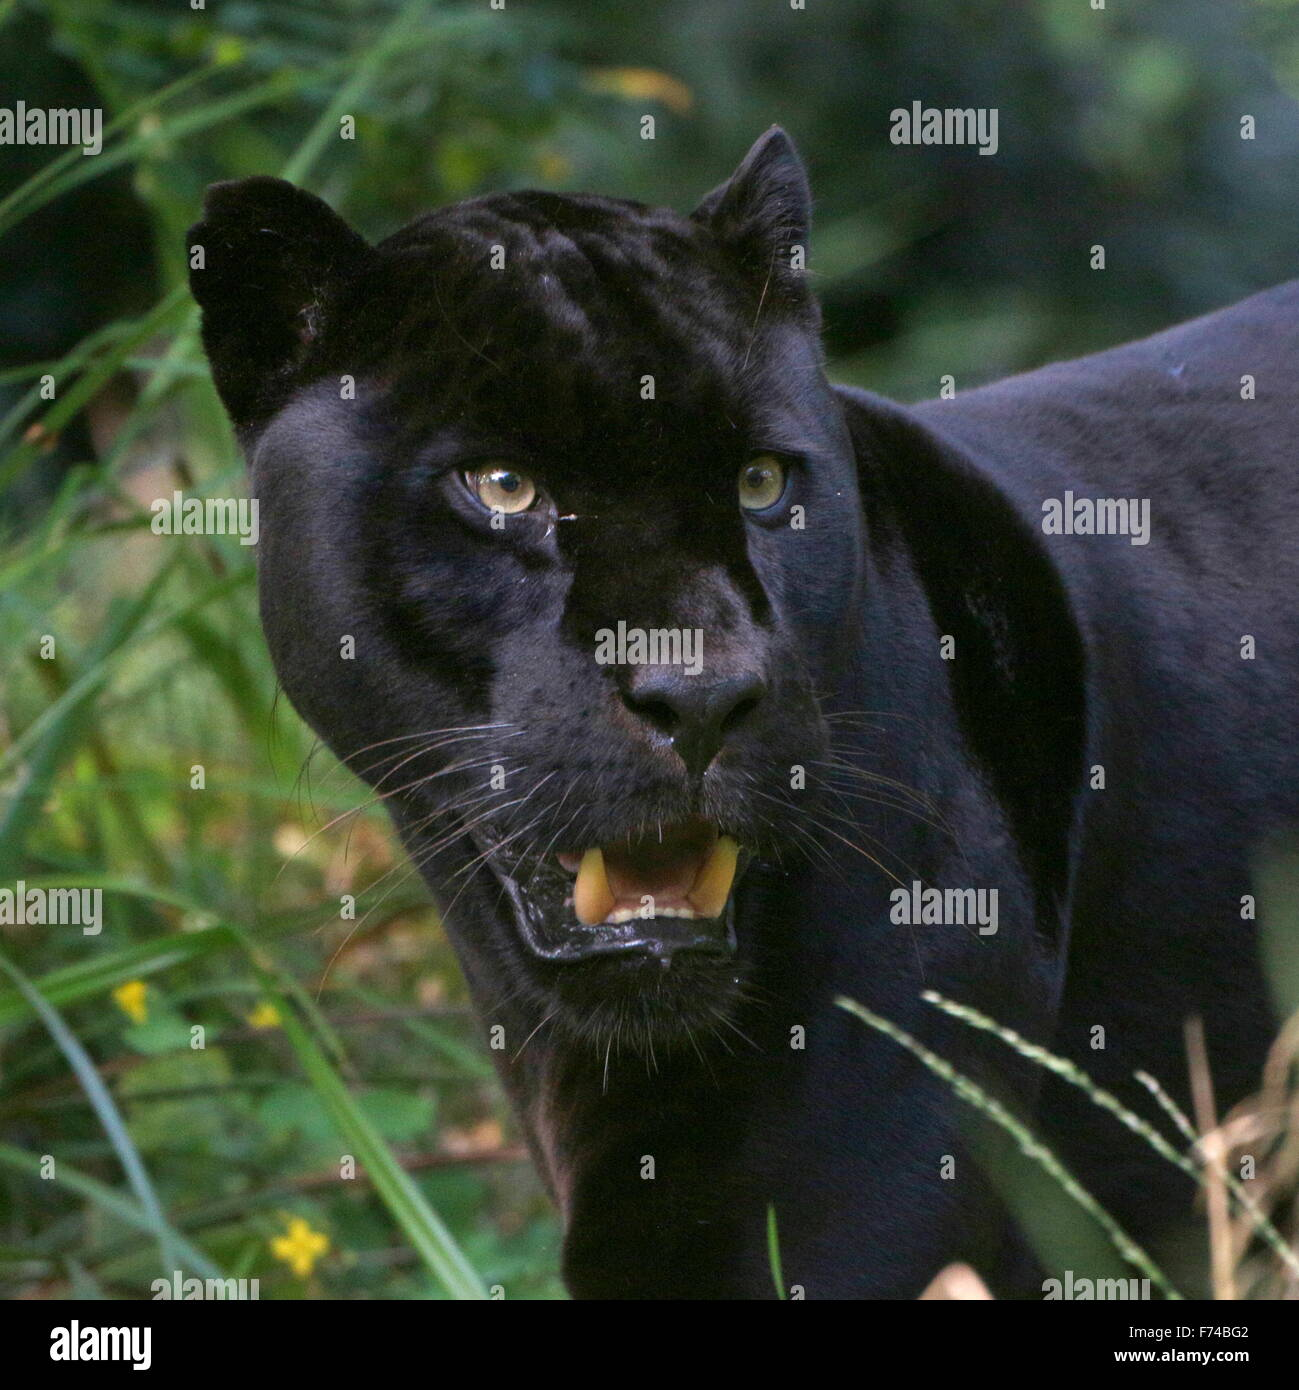 Close-up of the head of a male South American Black Jaguar (Panthera onca), facing camera - Stock Image